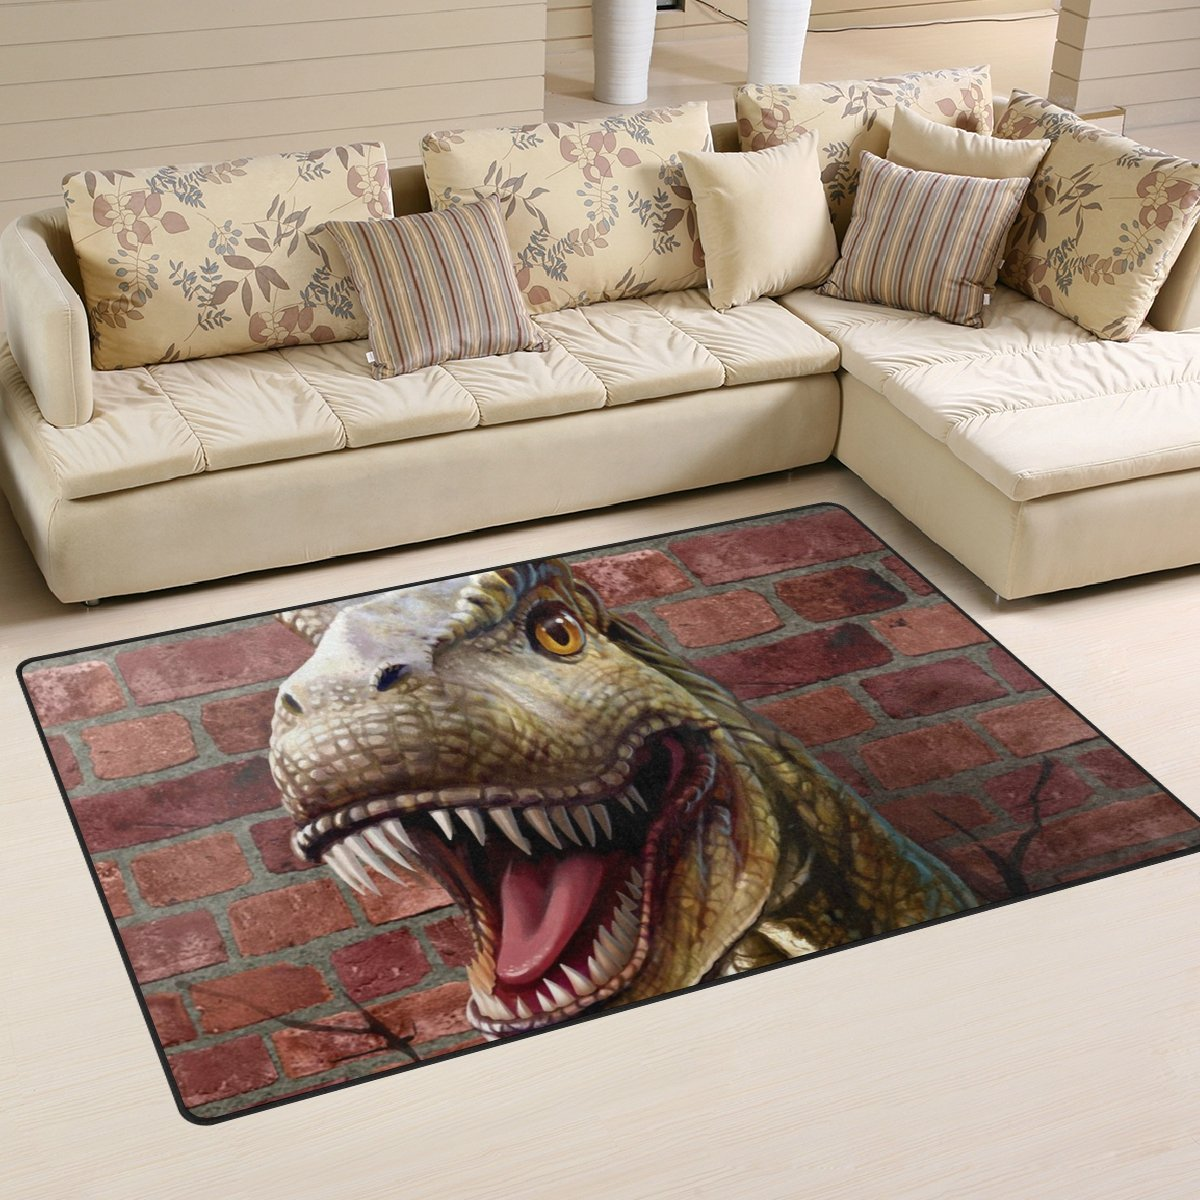 Naanle Animal Area Rug 3'x5', Dinosaur Through The Brick Wall Polyester Area Rug Mat for Living Dining Dorm Room Bedroom Home Decorative